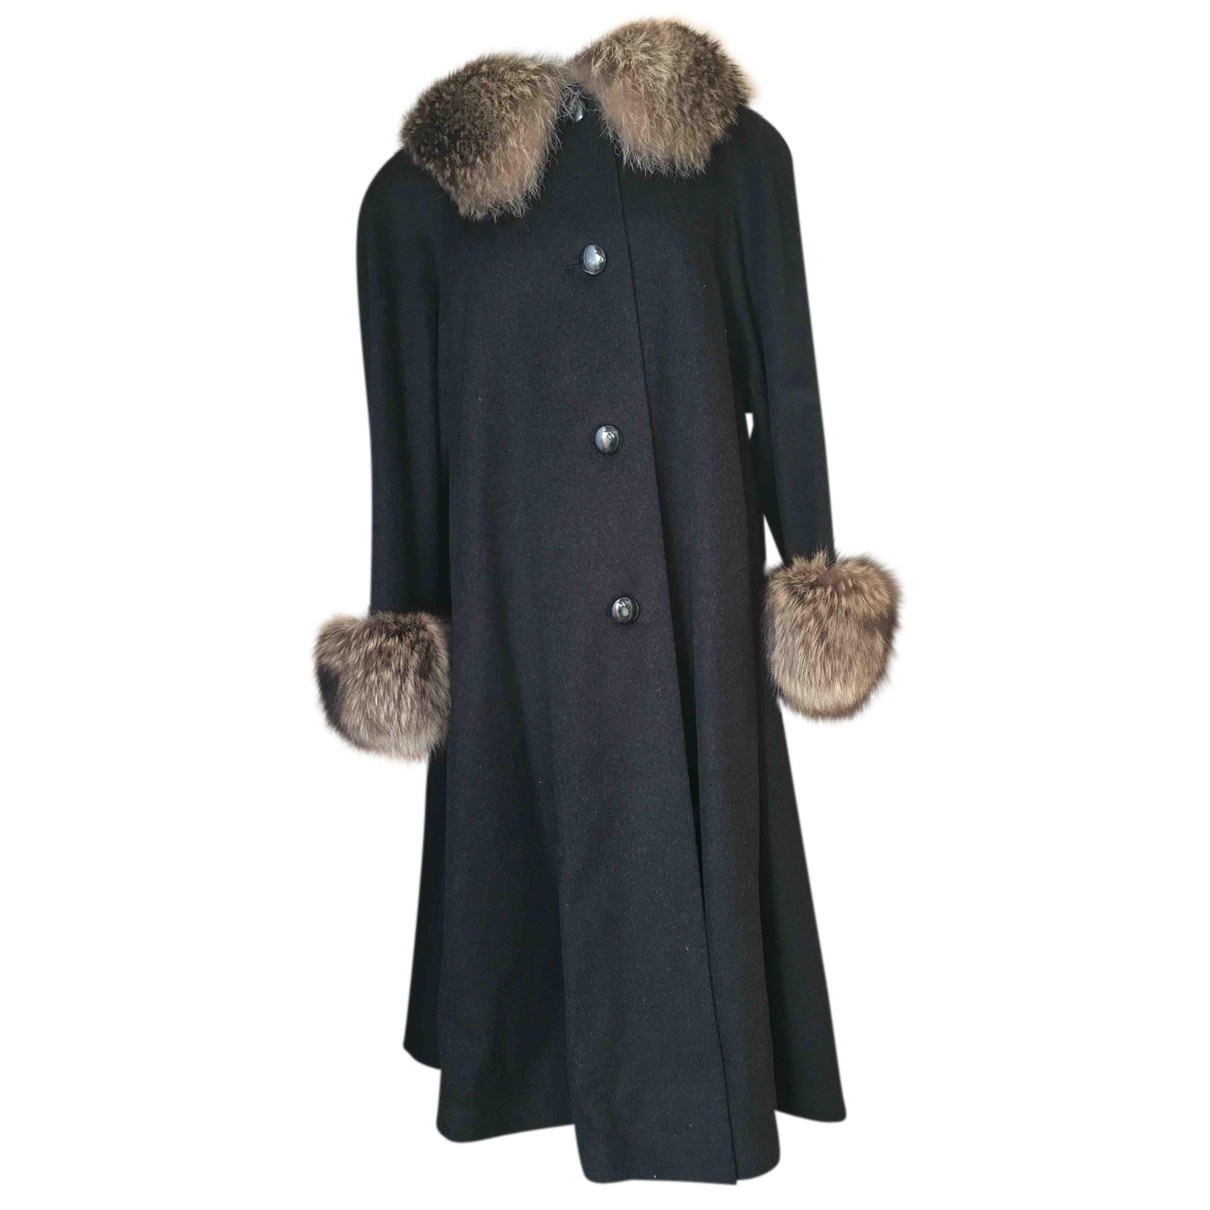 Autre Marque N Anthracite Wool coat for Women One Size International